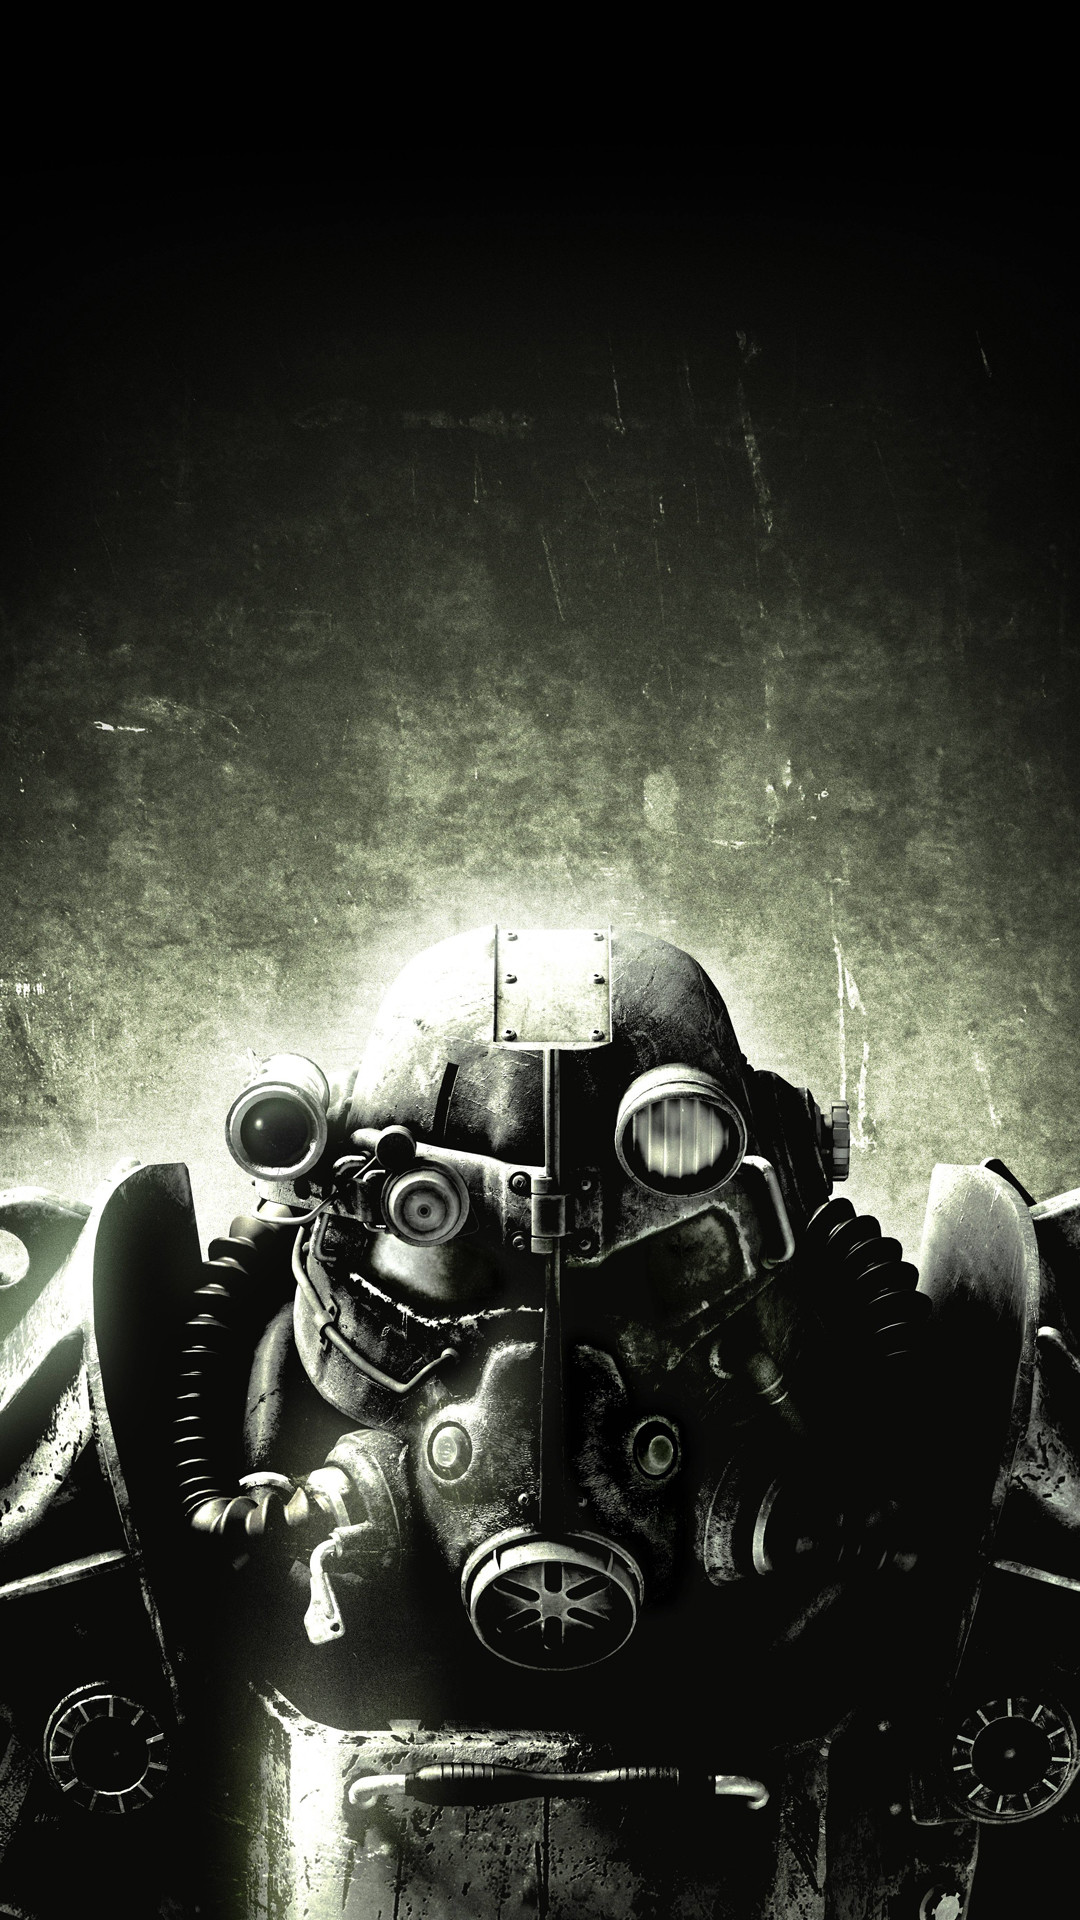 Fallout 4 htc one wallpaper – Best htc one wallpapersHTC wallpapers